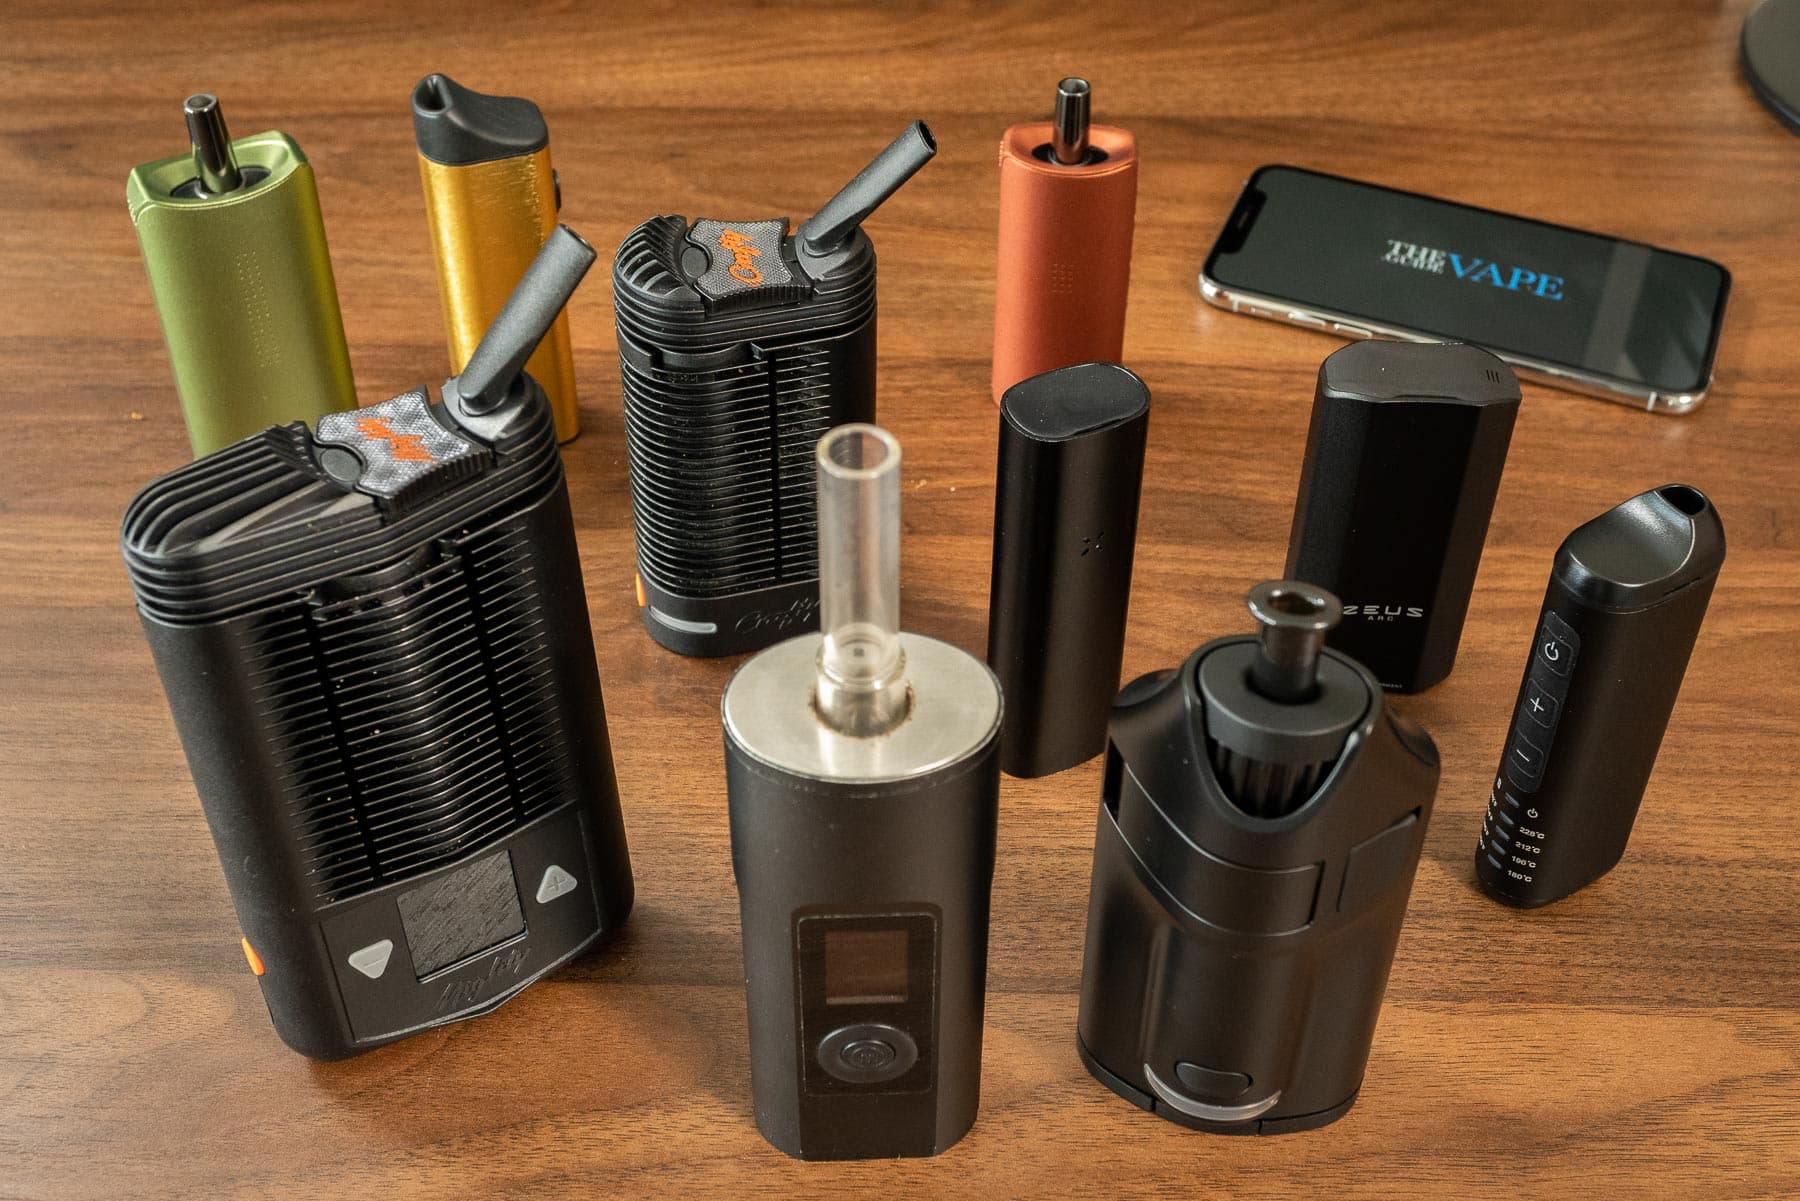 Best Dry Herb Vape 2019 Best Portable Dry Herb Vaporizers in 2019 & Coupon Codes